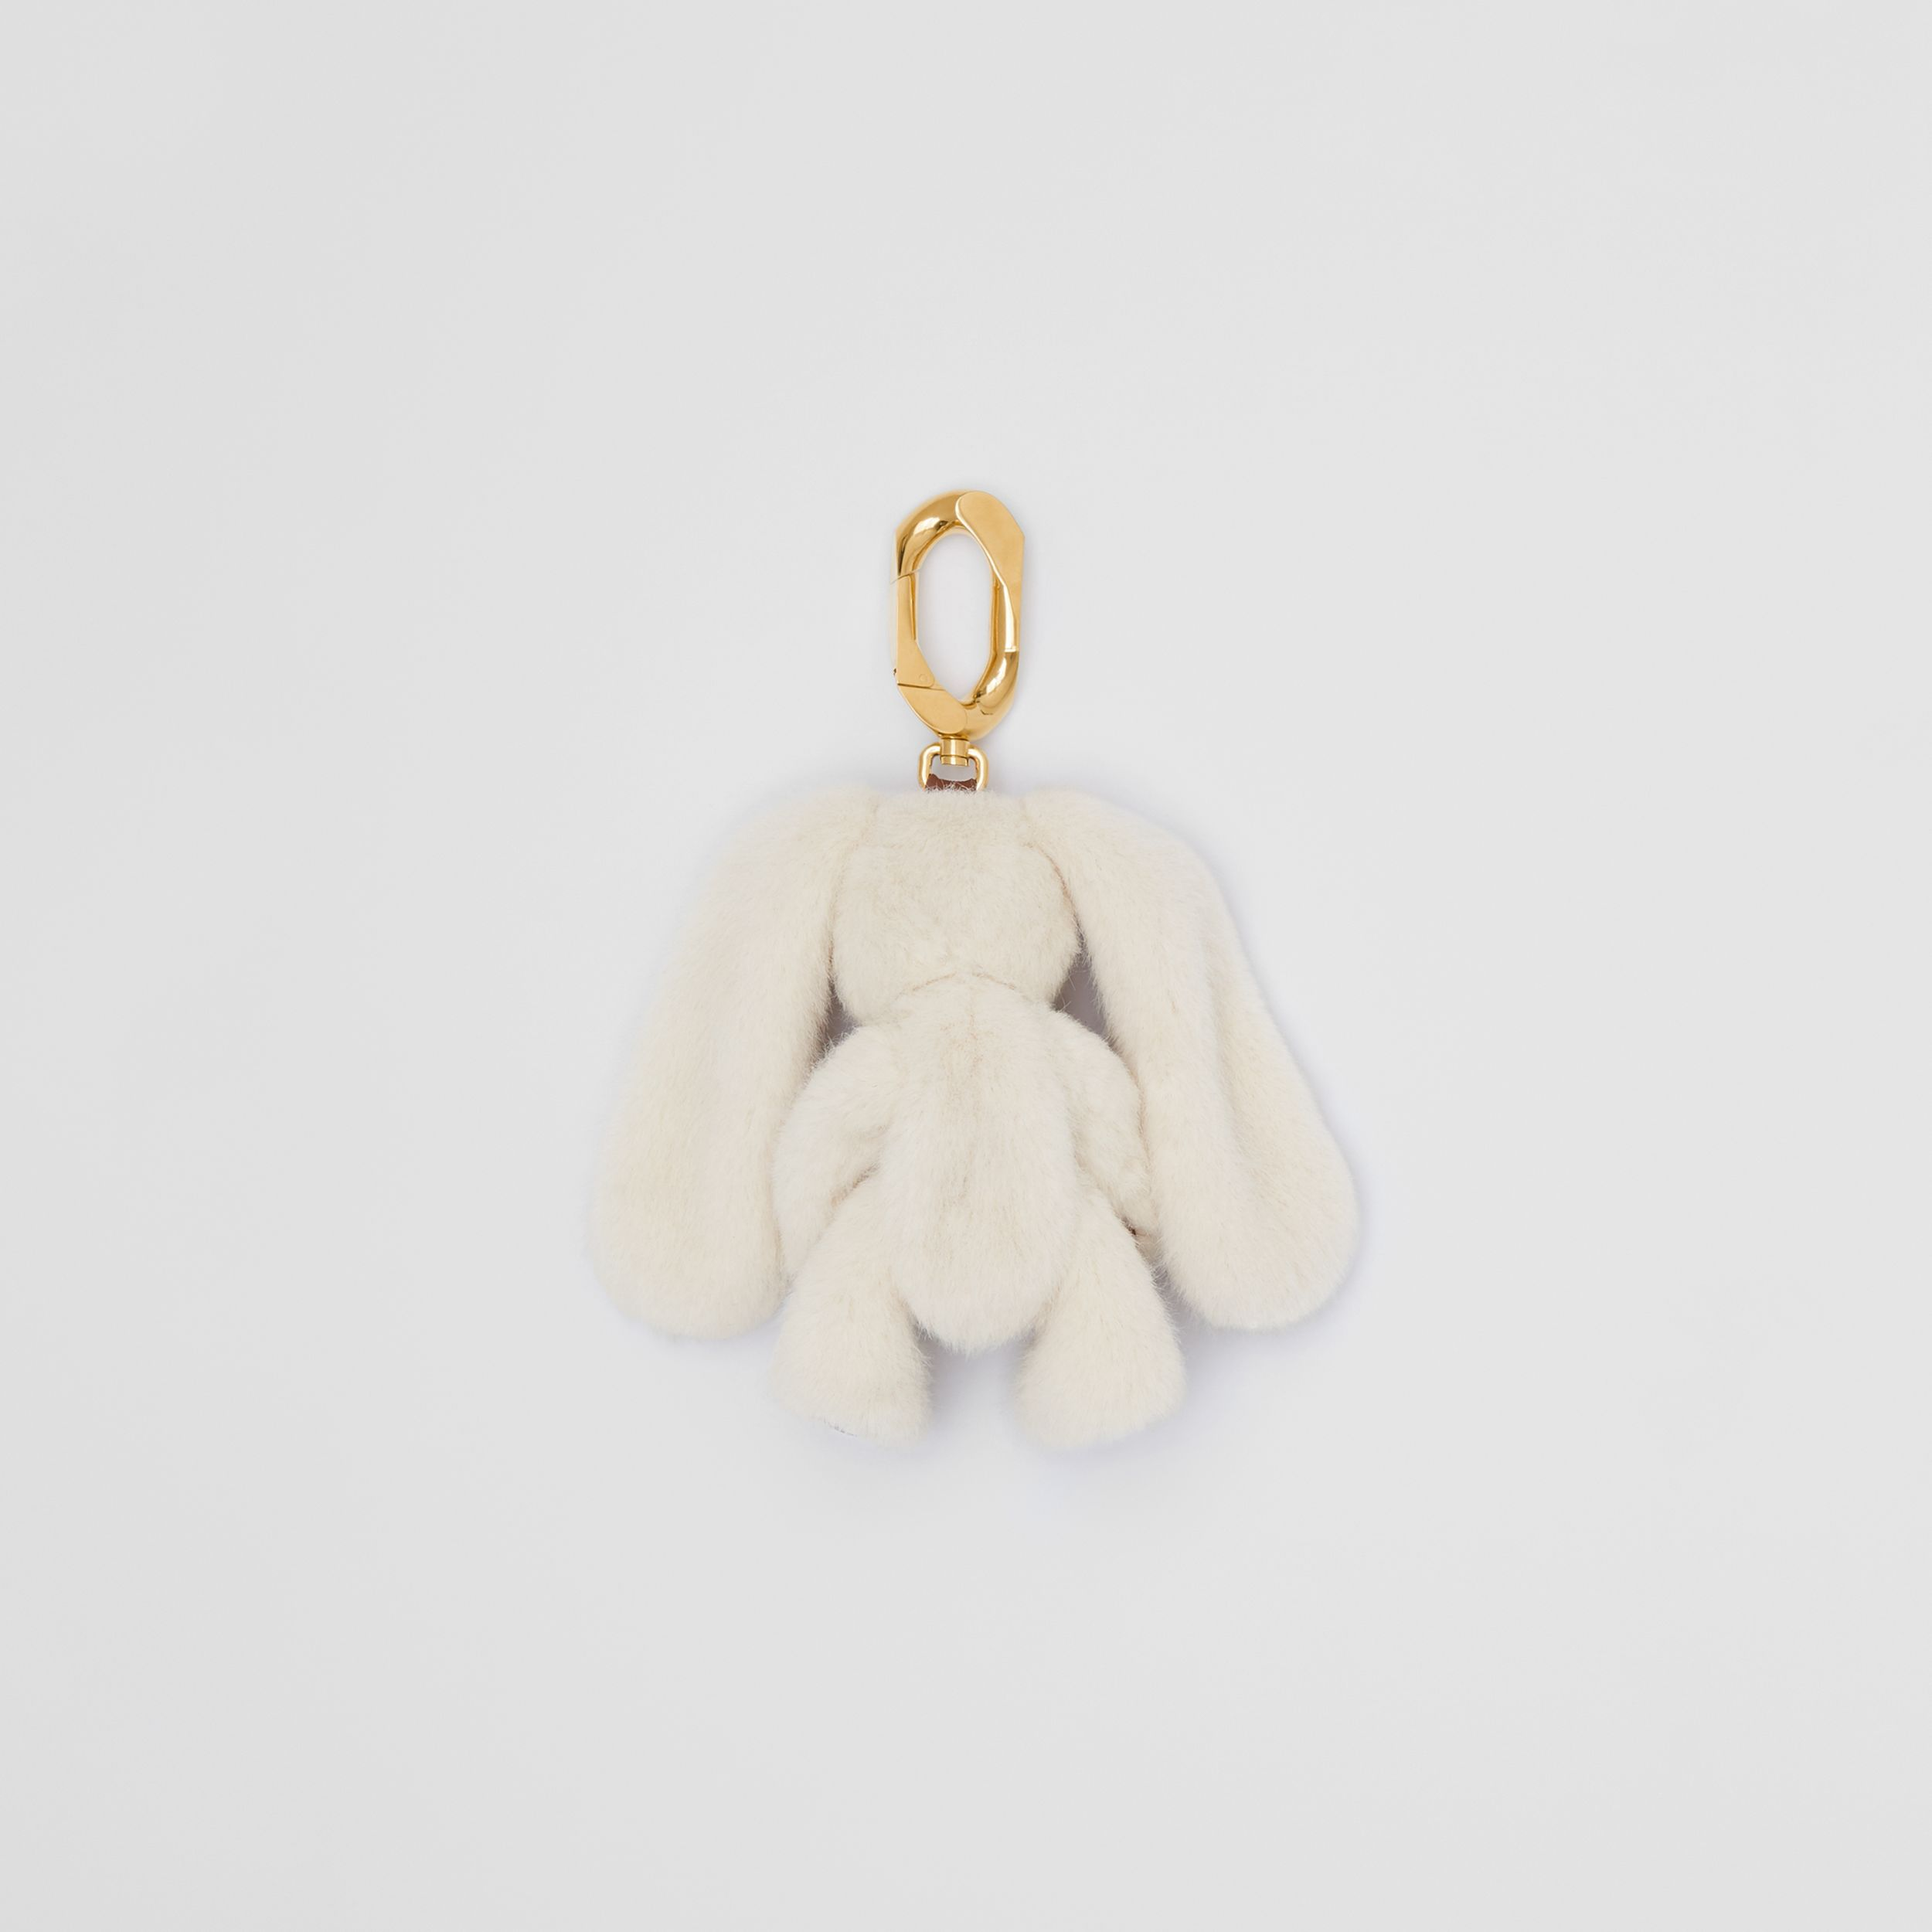 Embellished Faux Fur and Leather Rabbit Charm in Buttermilk | Burberry - 3